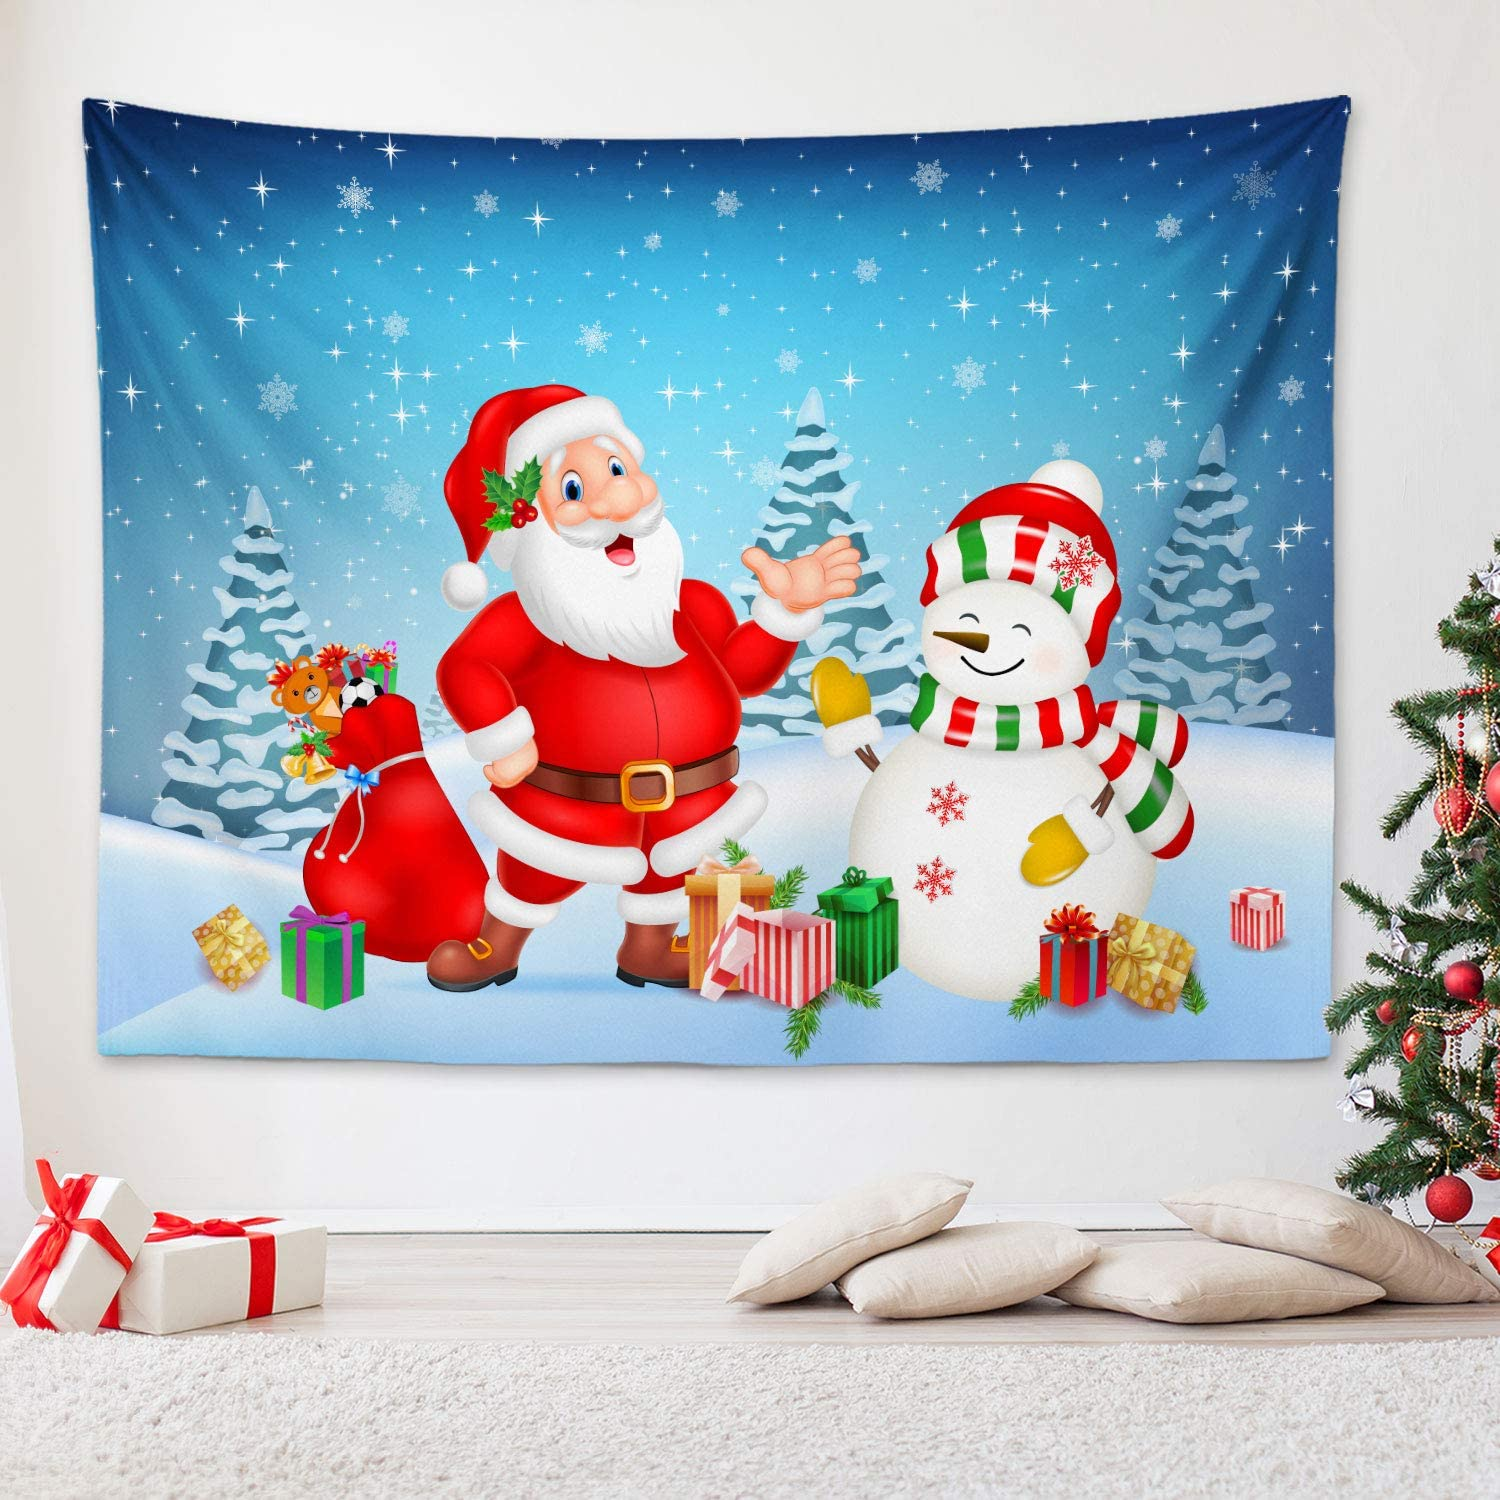 """RosieLily Christmas Tapestry Santa Claus Pattern Tapestries, 59""""x 79"""" Decorative Snowman Wall Hanging for Bedroom Living Room Dorm Wall Decor, Blue"""